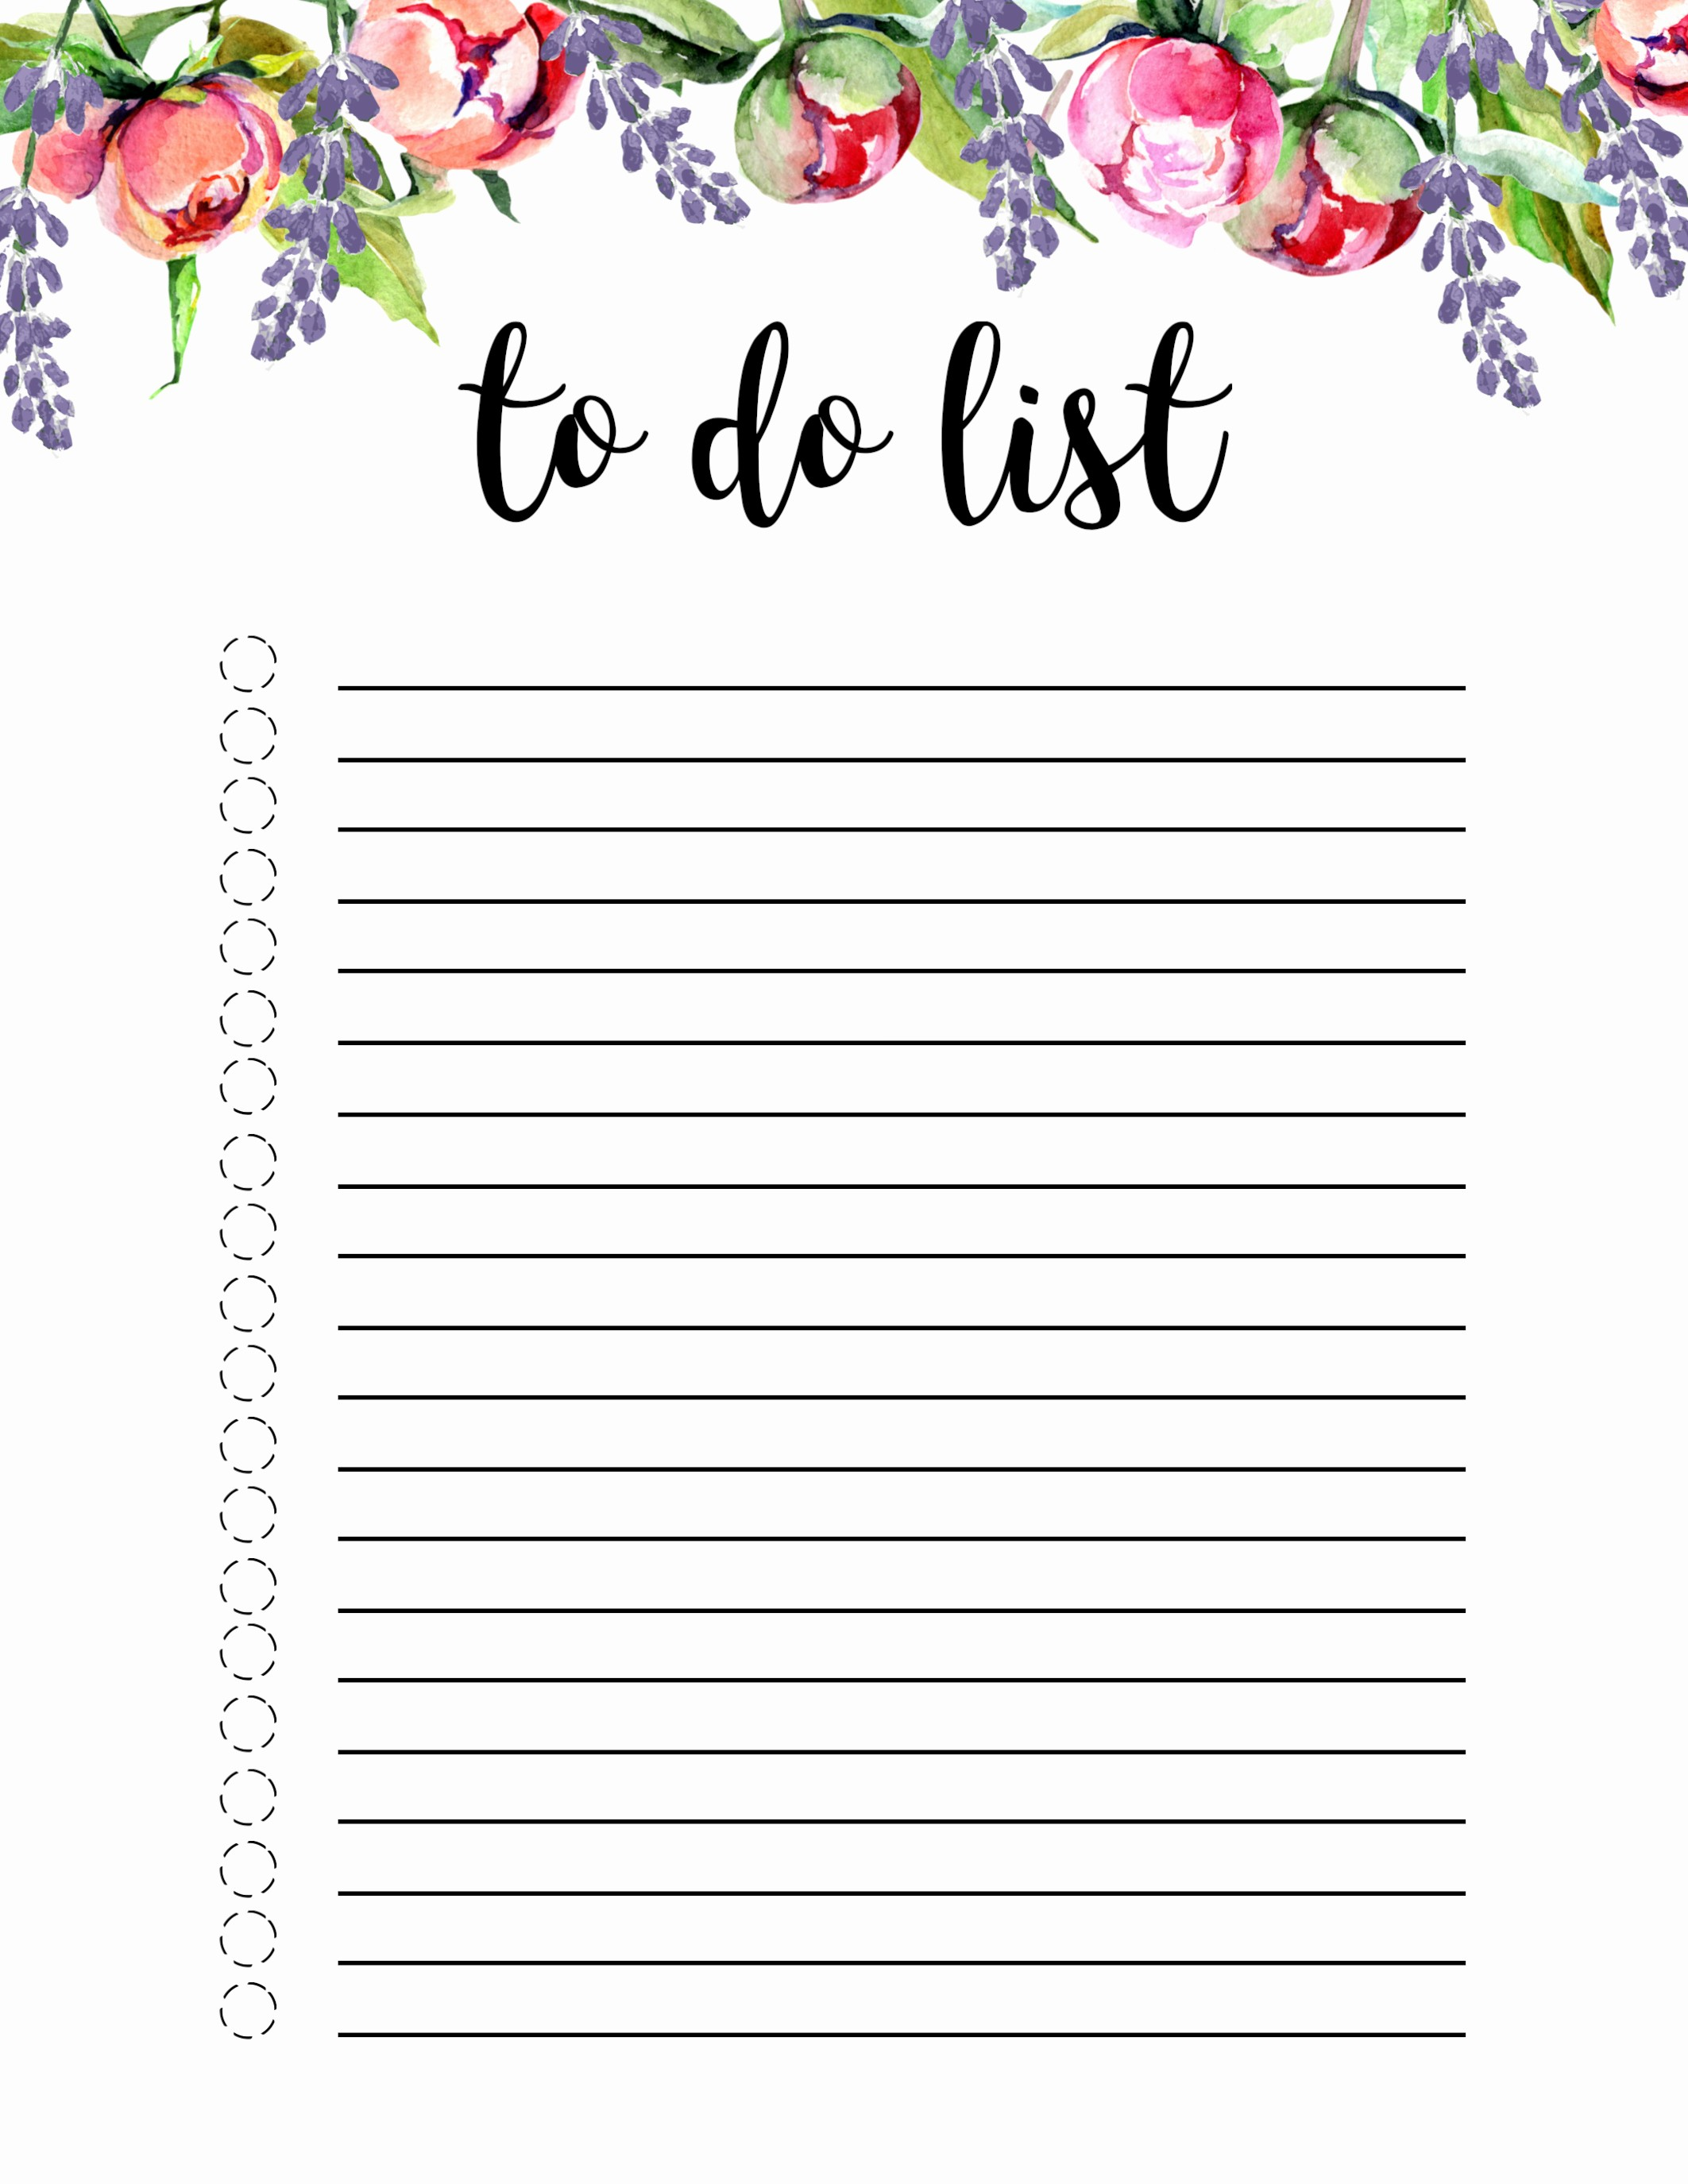 Printable to Do List Template Awesome Floral to Do List Printable Template Paper Trail Design